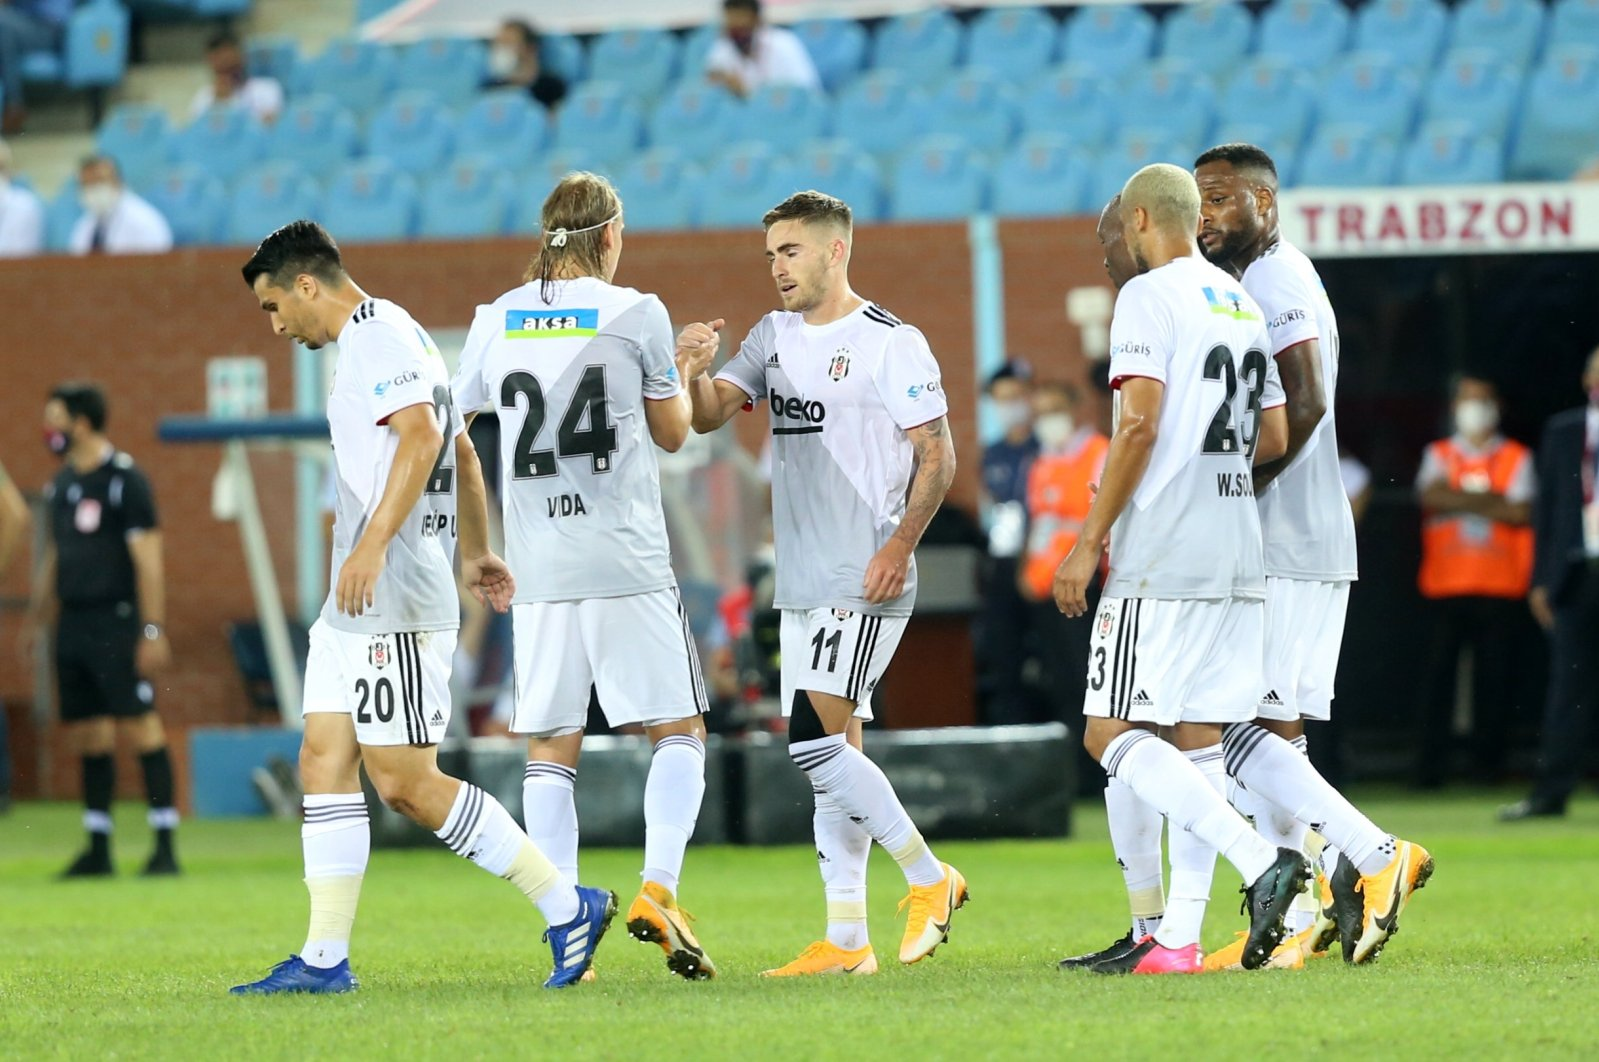 Beşiktaş players celebrate a goal during a Süper Lig match against Trabzonspor in Trabzon, Turkey, Sept. 13, 2020. (AA Photo)